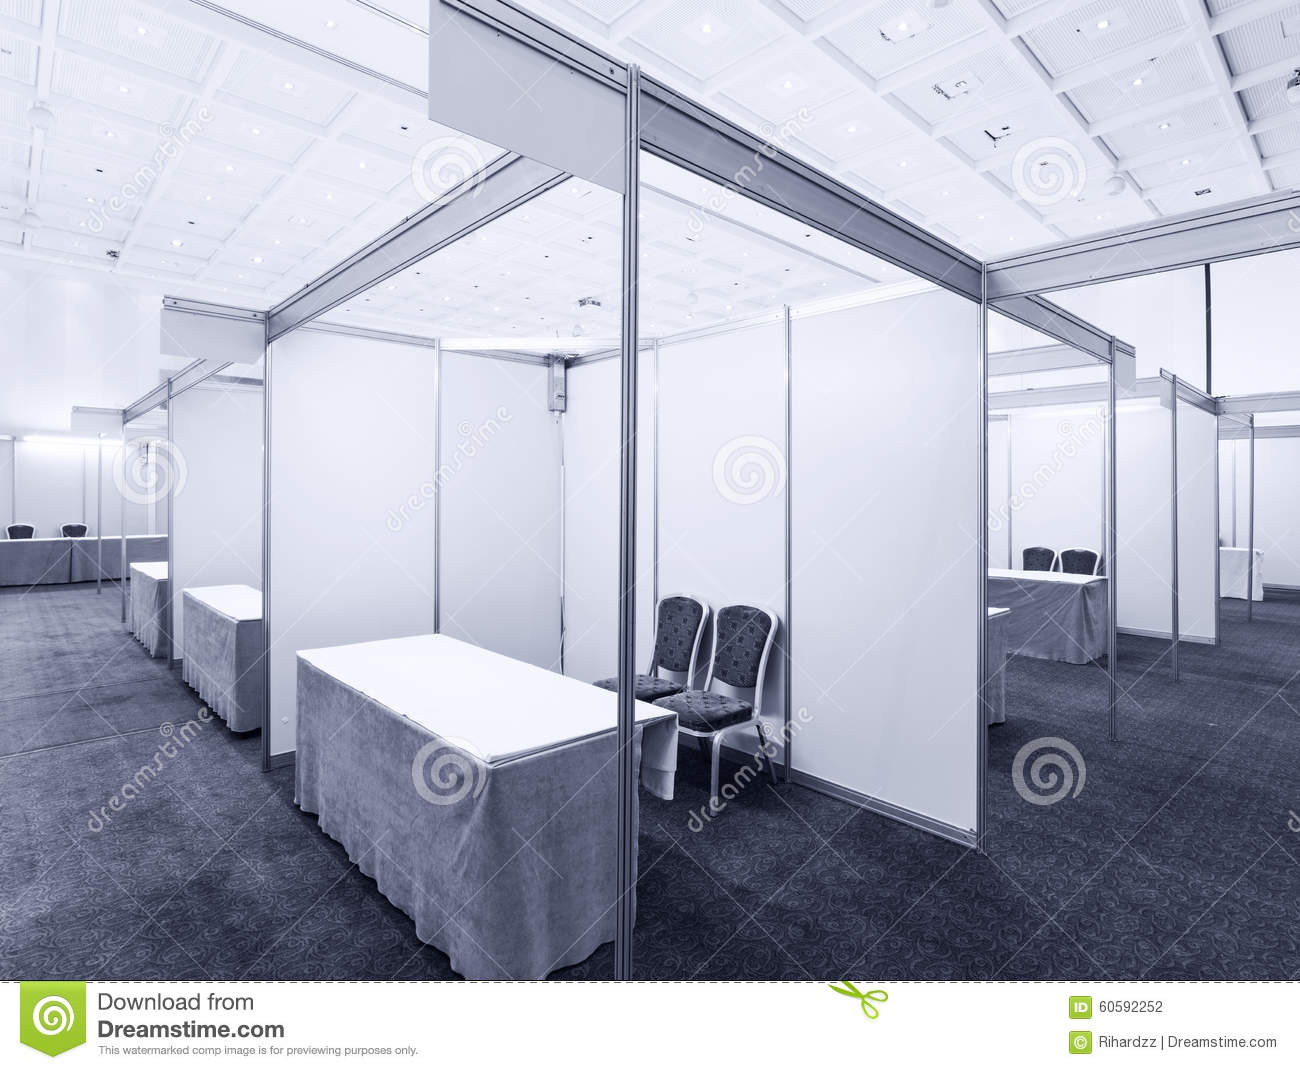 Exhibition Booth Table : Trade show interior royalty free stock image